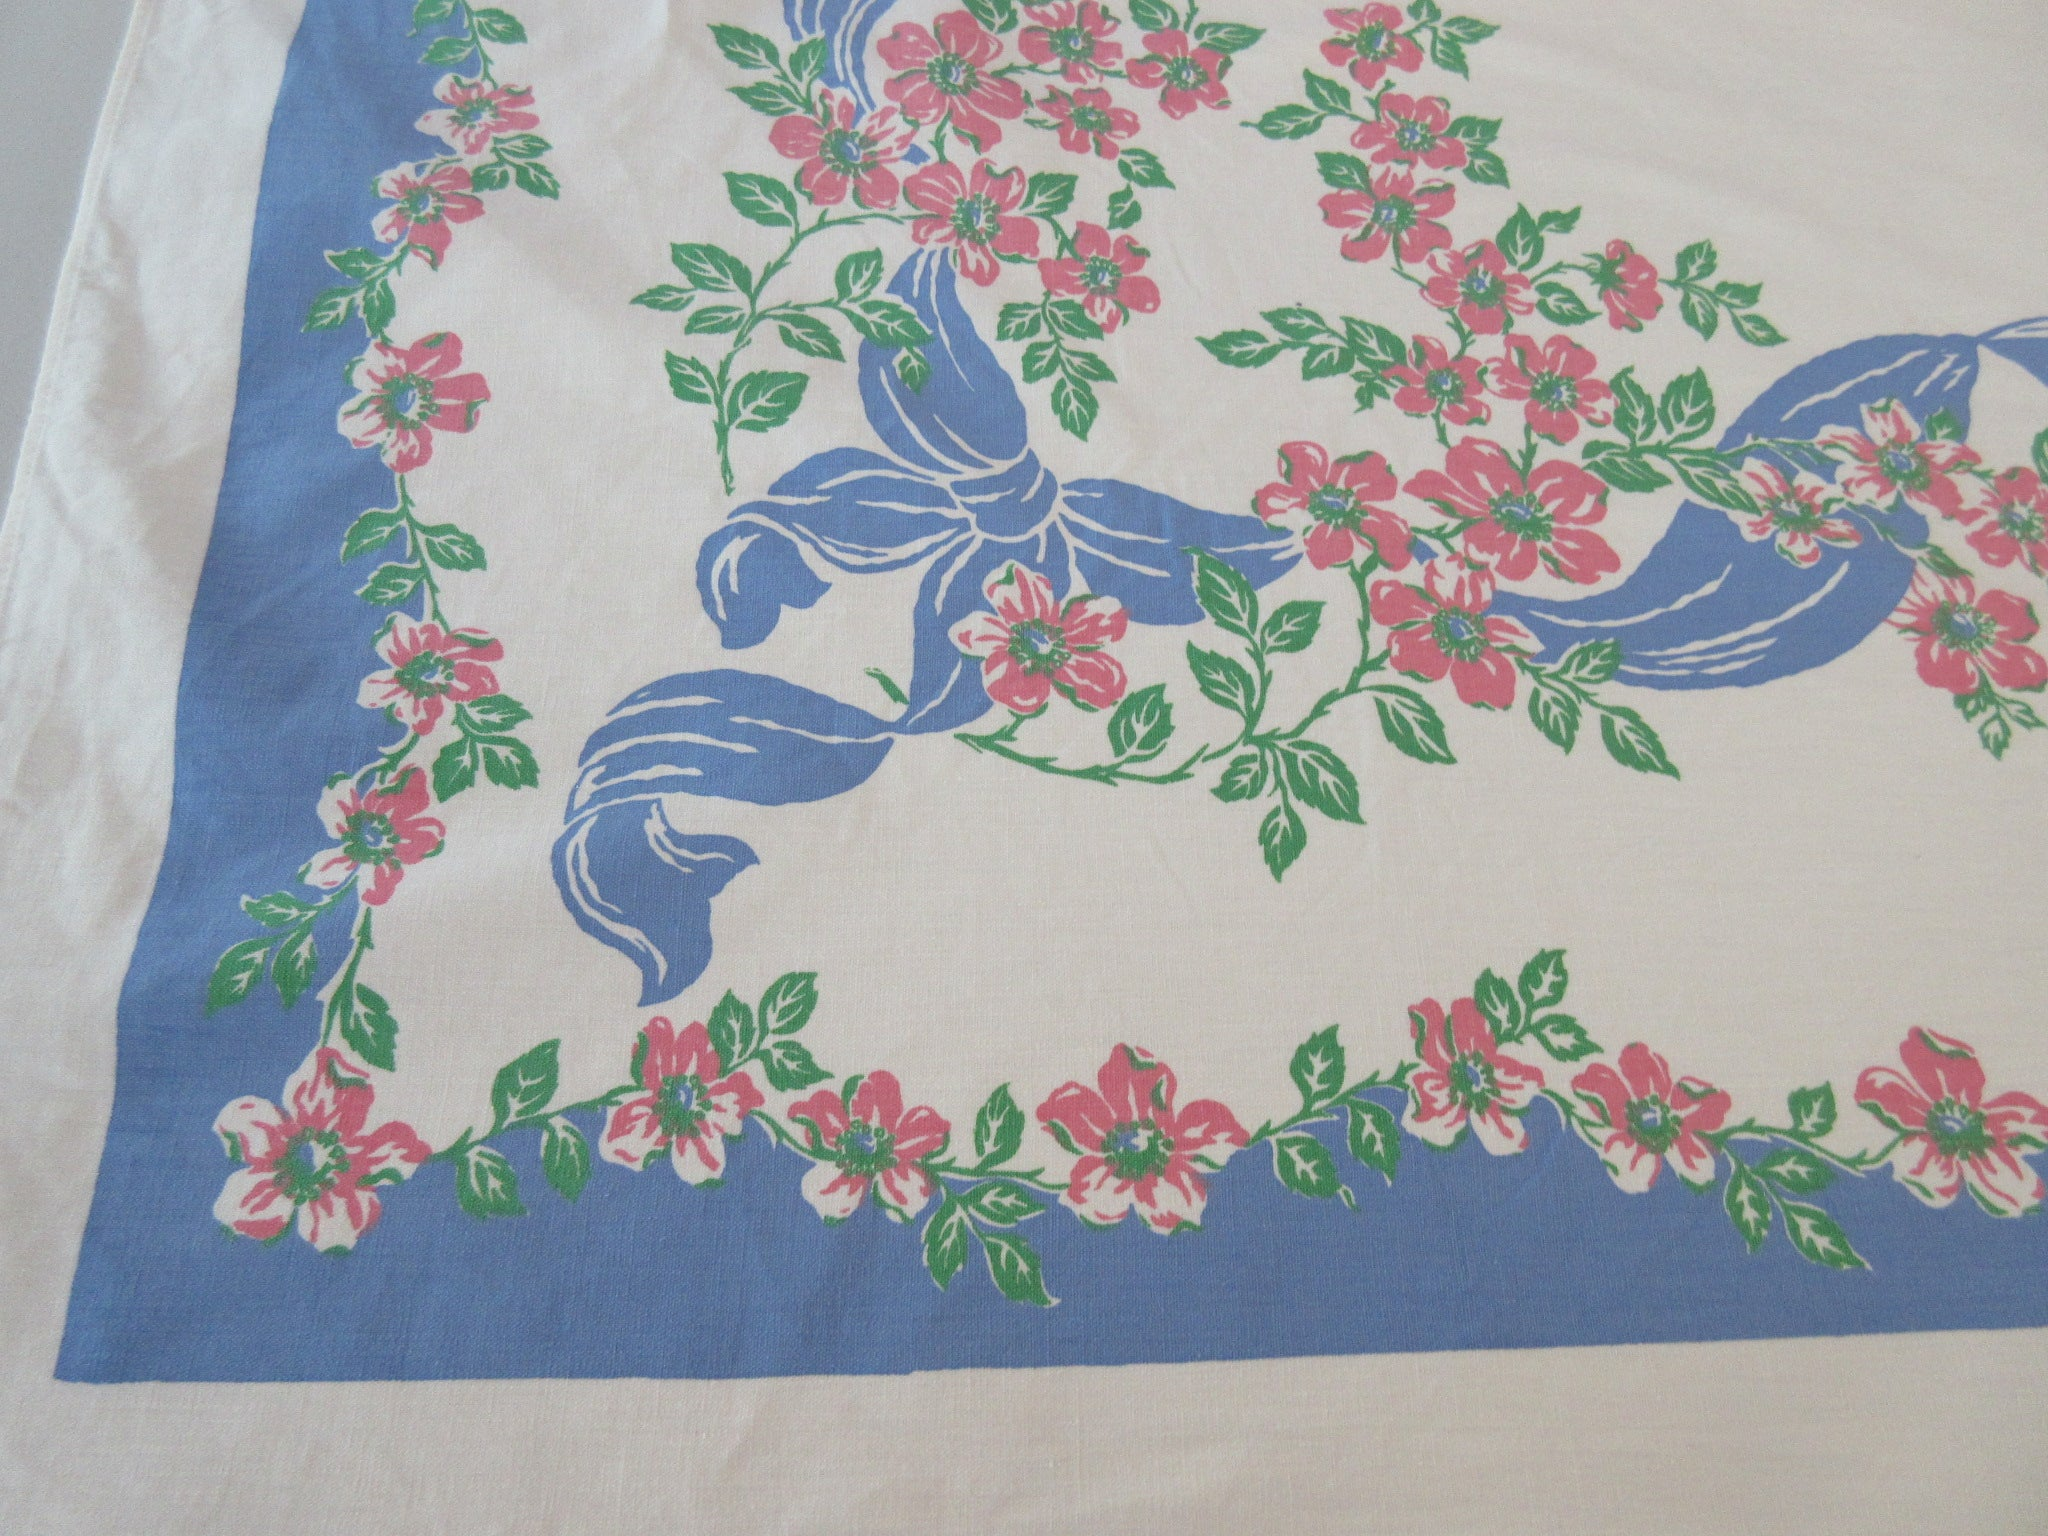 Pink Dogwood on Blue Ribbons Floral Vintage Printed Tablecloth (64 X 51)